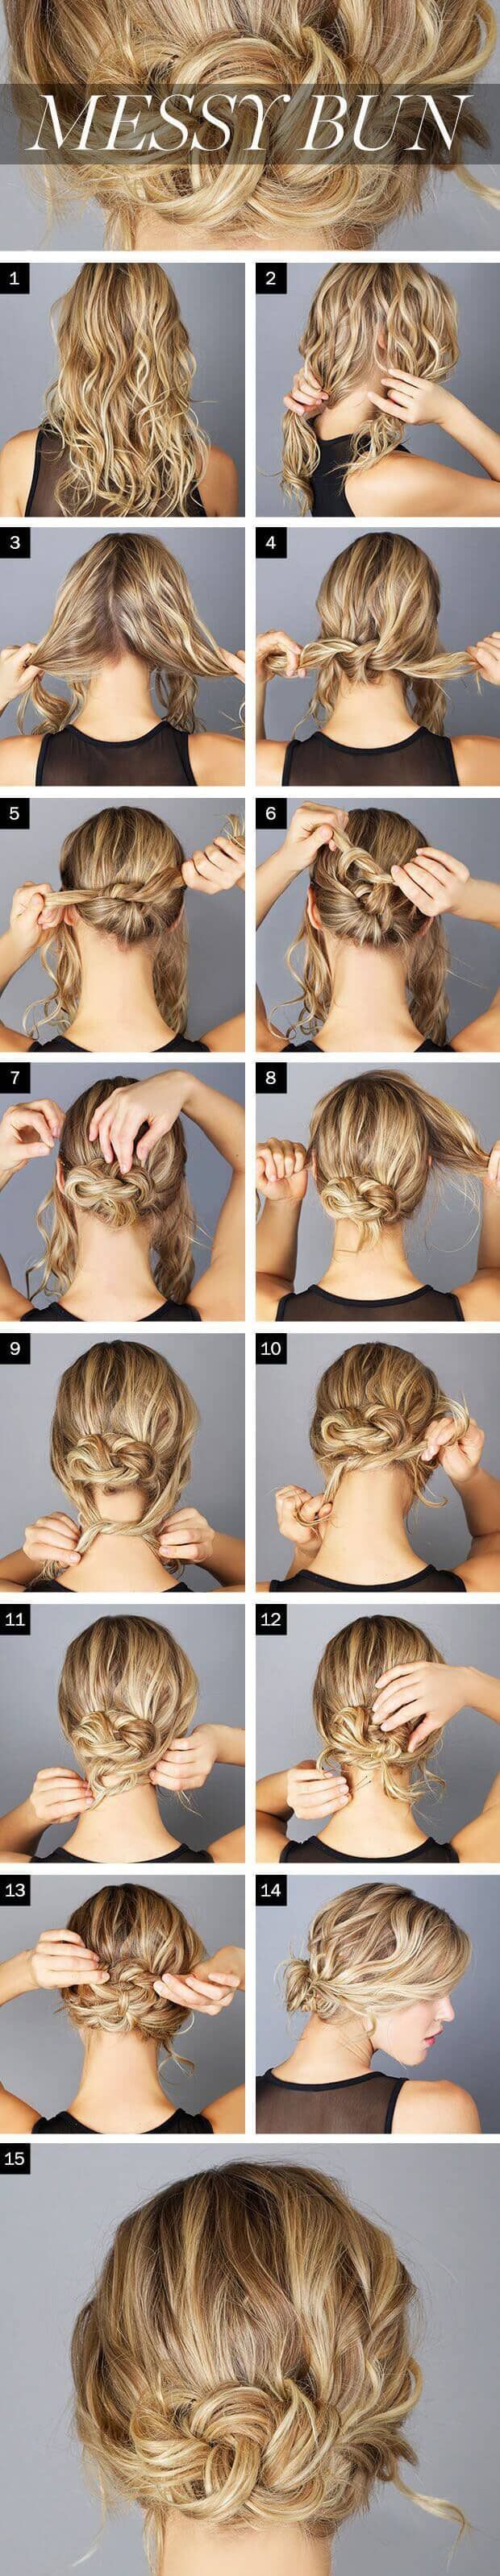 Best Adorable Bun Hairstyles 2019-Inspirations That 5